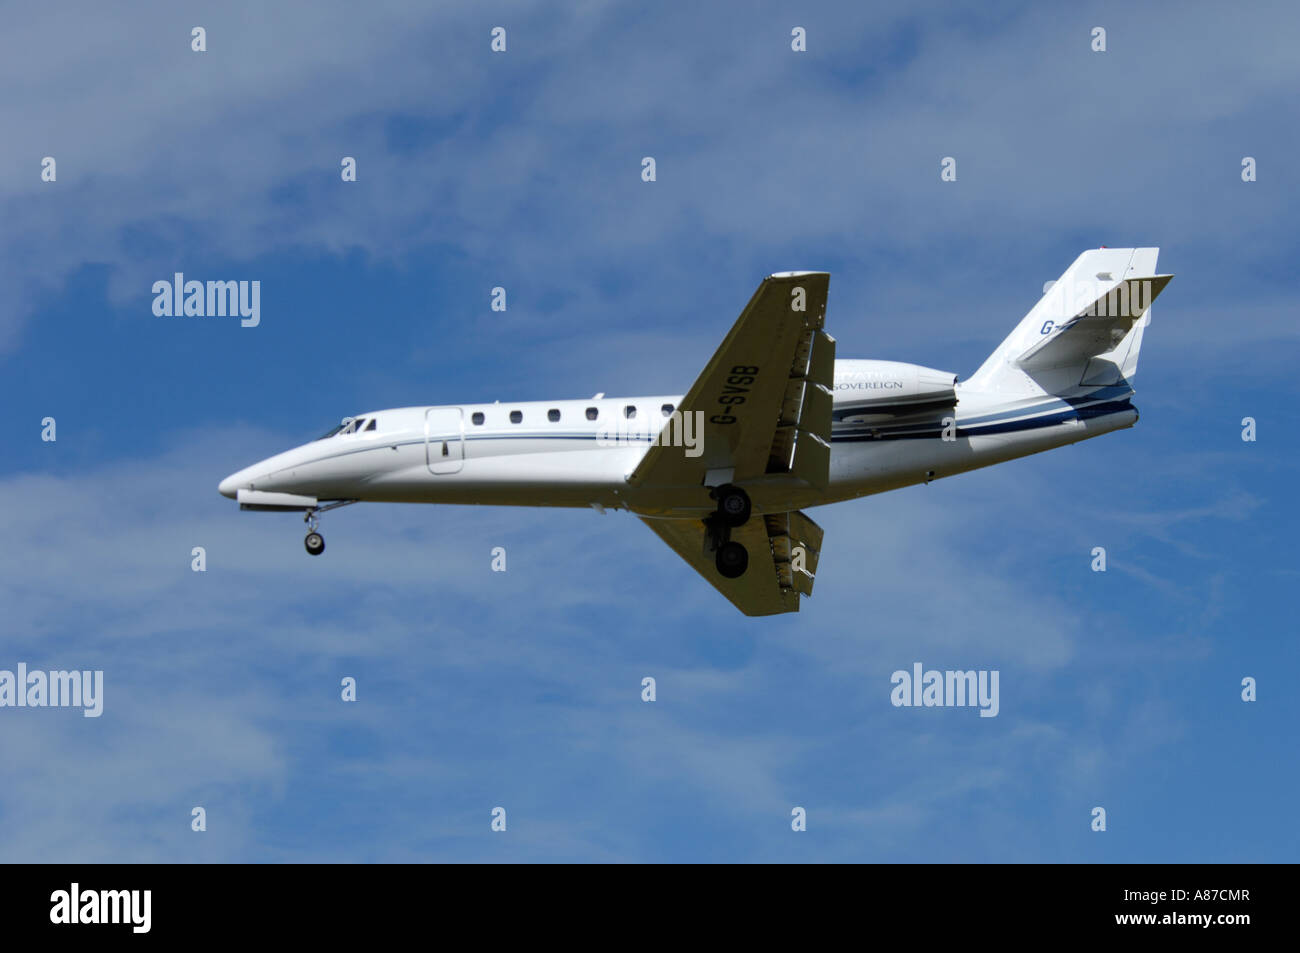 Citation Sovereign, Executive Twin Engined Jet.Approaching Inverness Airfield Scotland UK - Stock Image